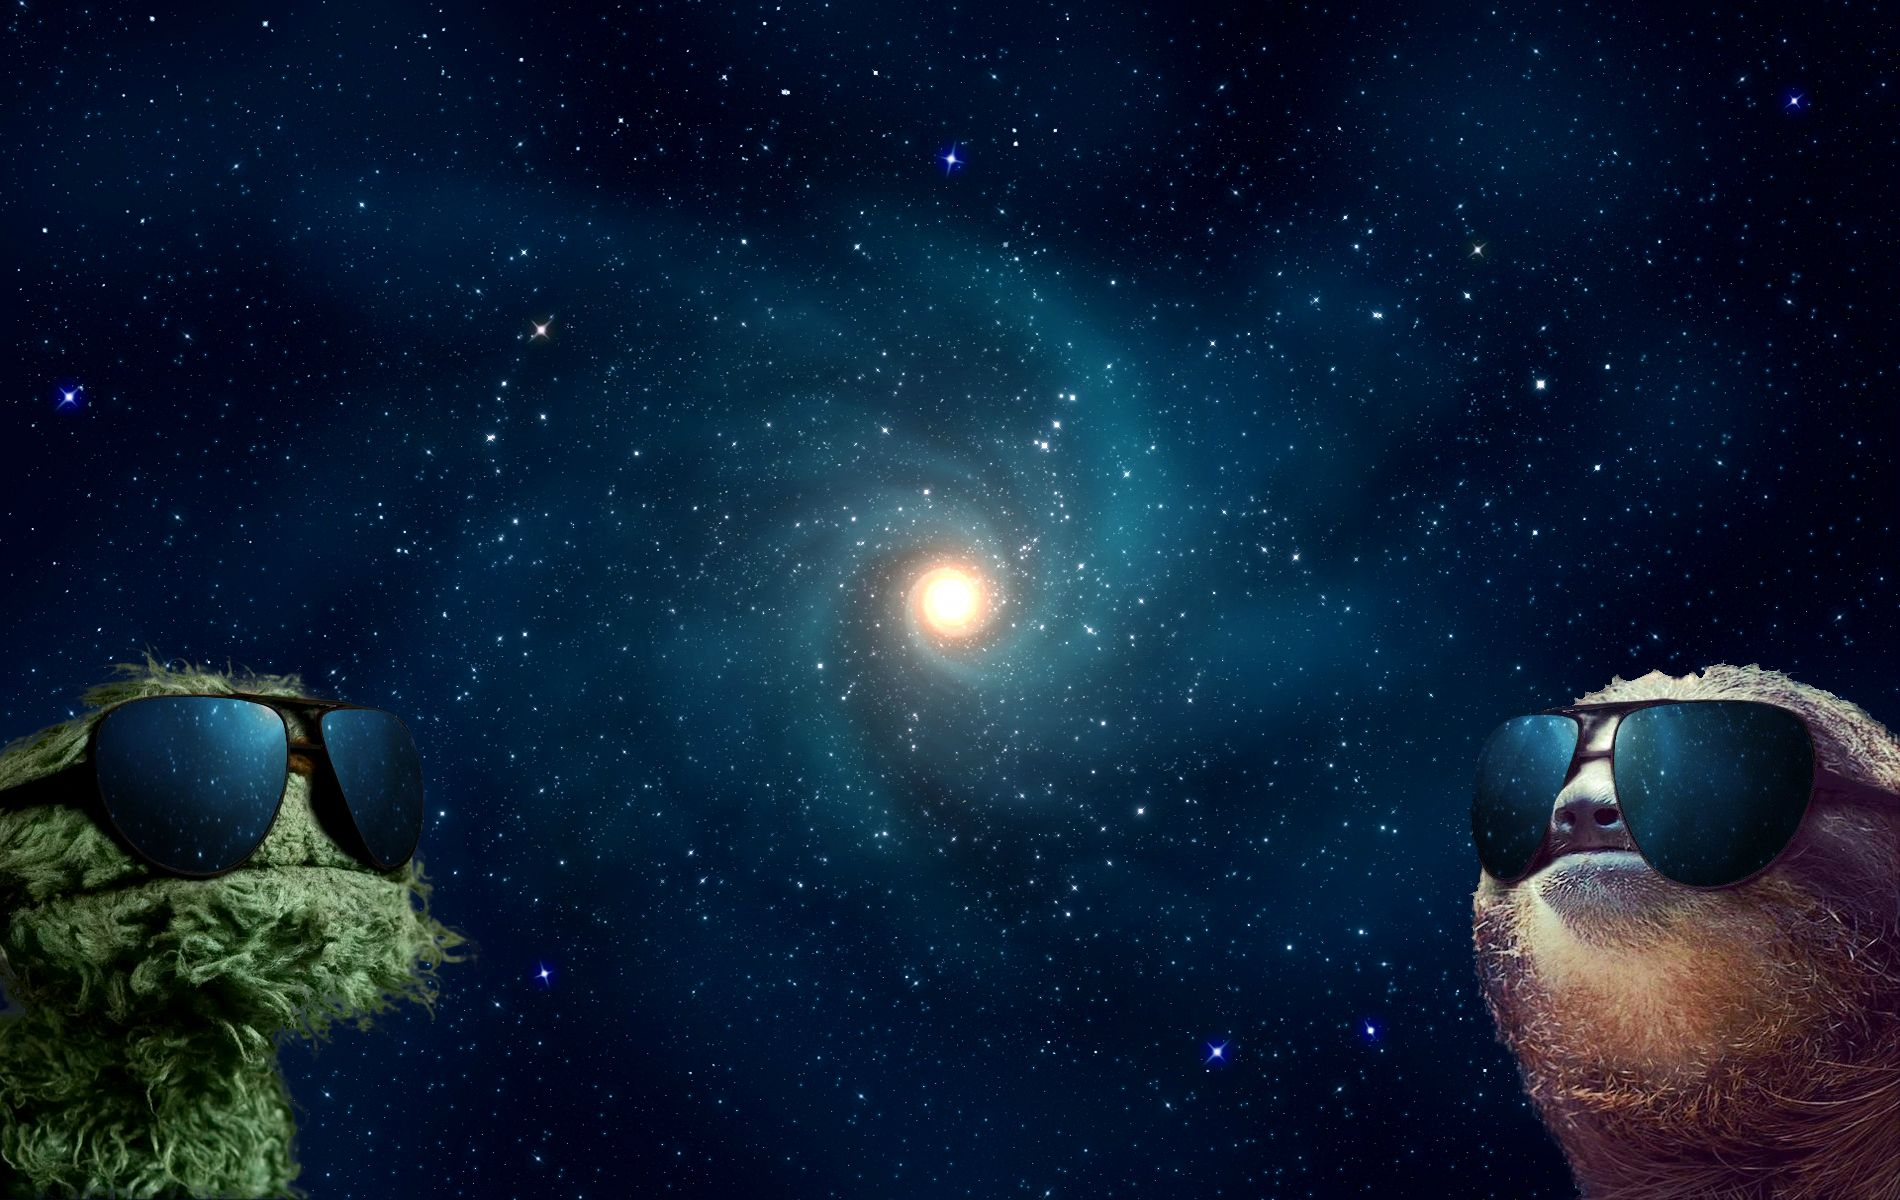 Sloth and Grover in Space HD Wallpaper Download HD Wallpaper 1900x1200